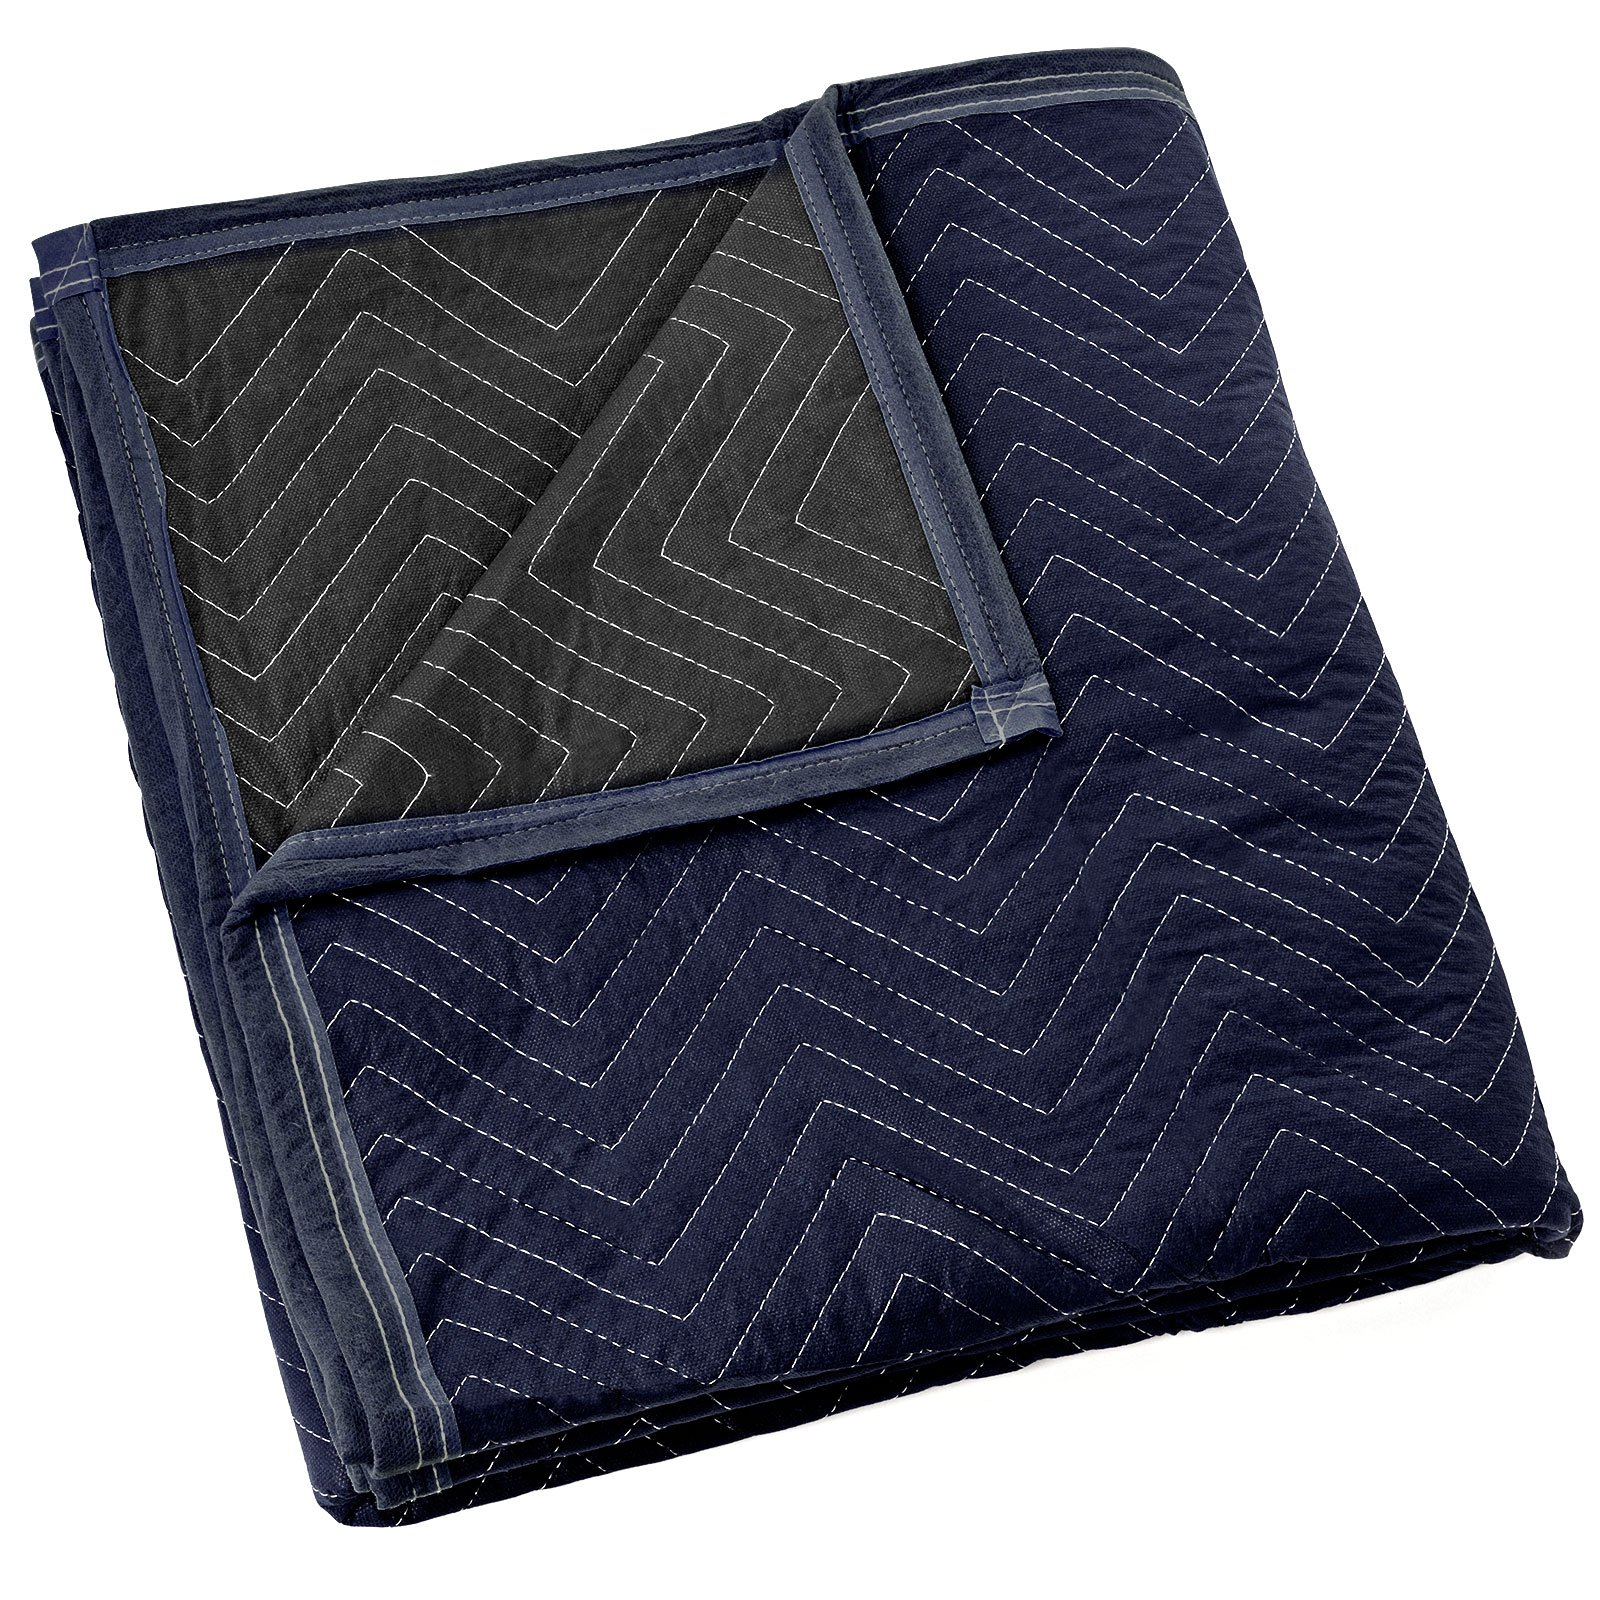 Sure-Max Moving & Packing Blanket - Pro Economy - 80'' x 72'' (35 lb/dz weight) - Professional Quilted Shipping Furniture Pad Navy Blue and Black